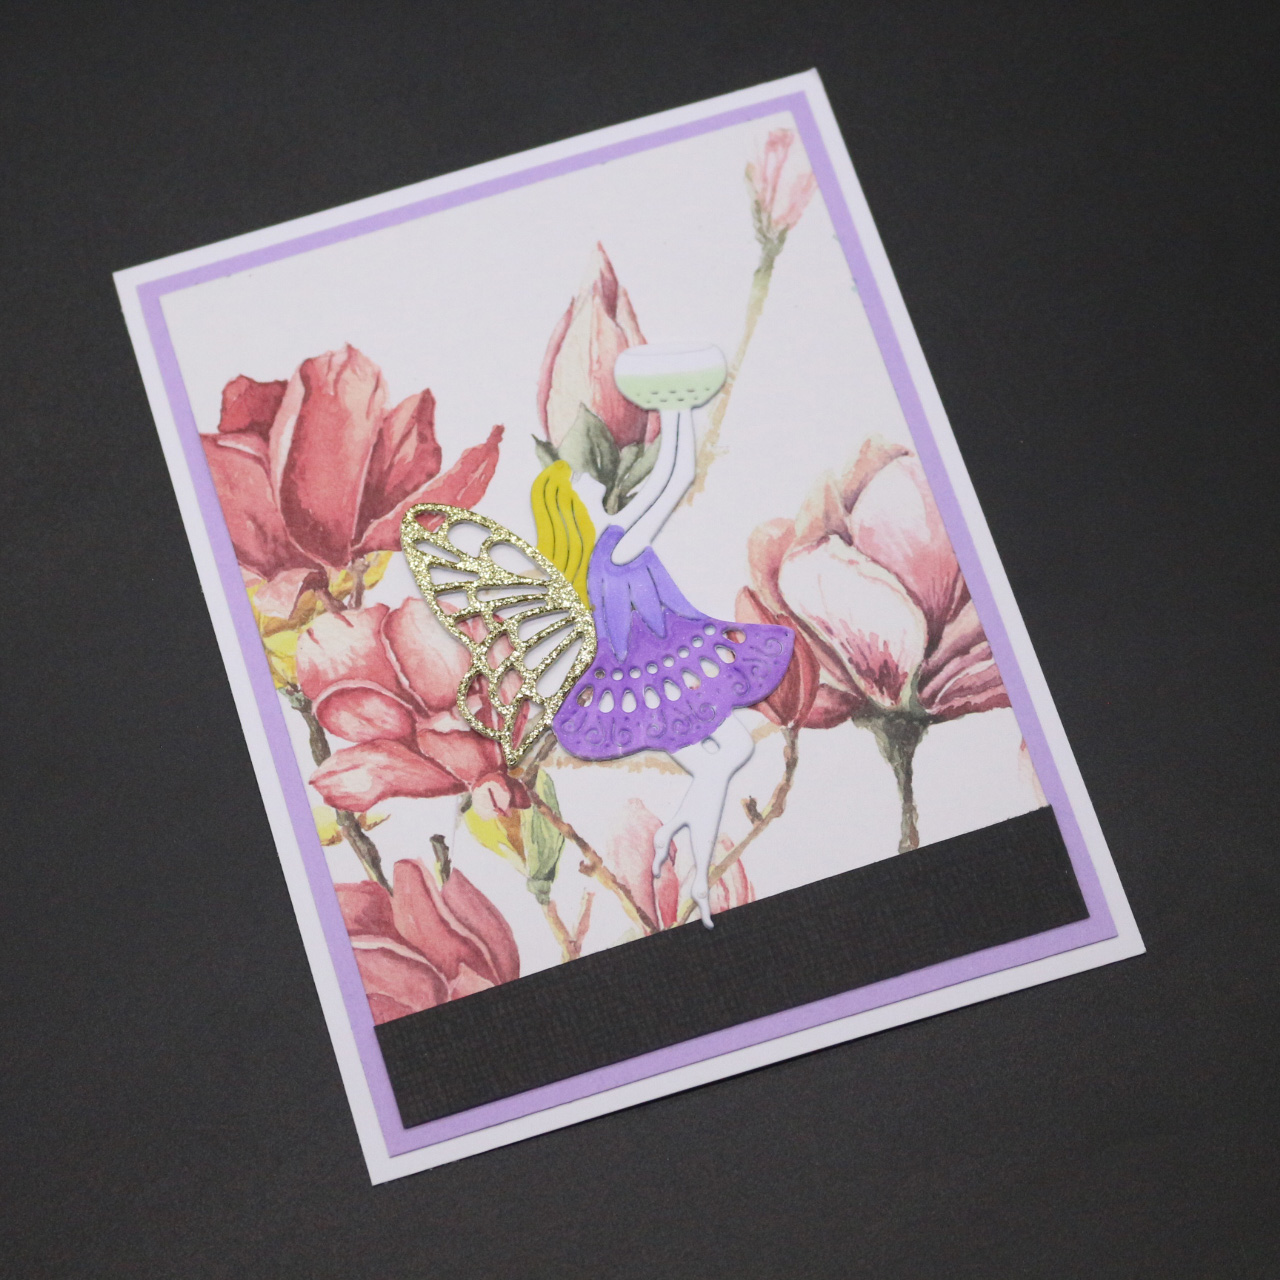 Cute little fairy Metal Cutting Dies for Scrapbooking Photo Album Embossing DIY Paper Cards Making Decorative Stencil Craft